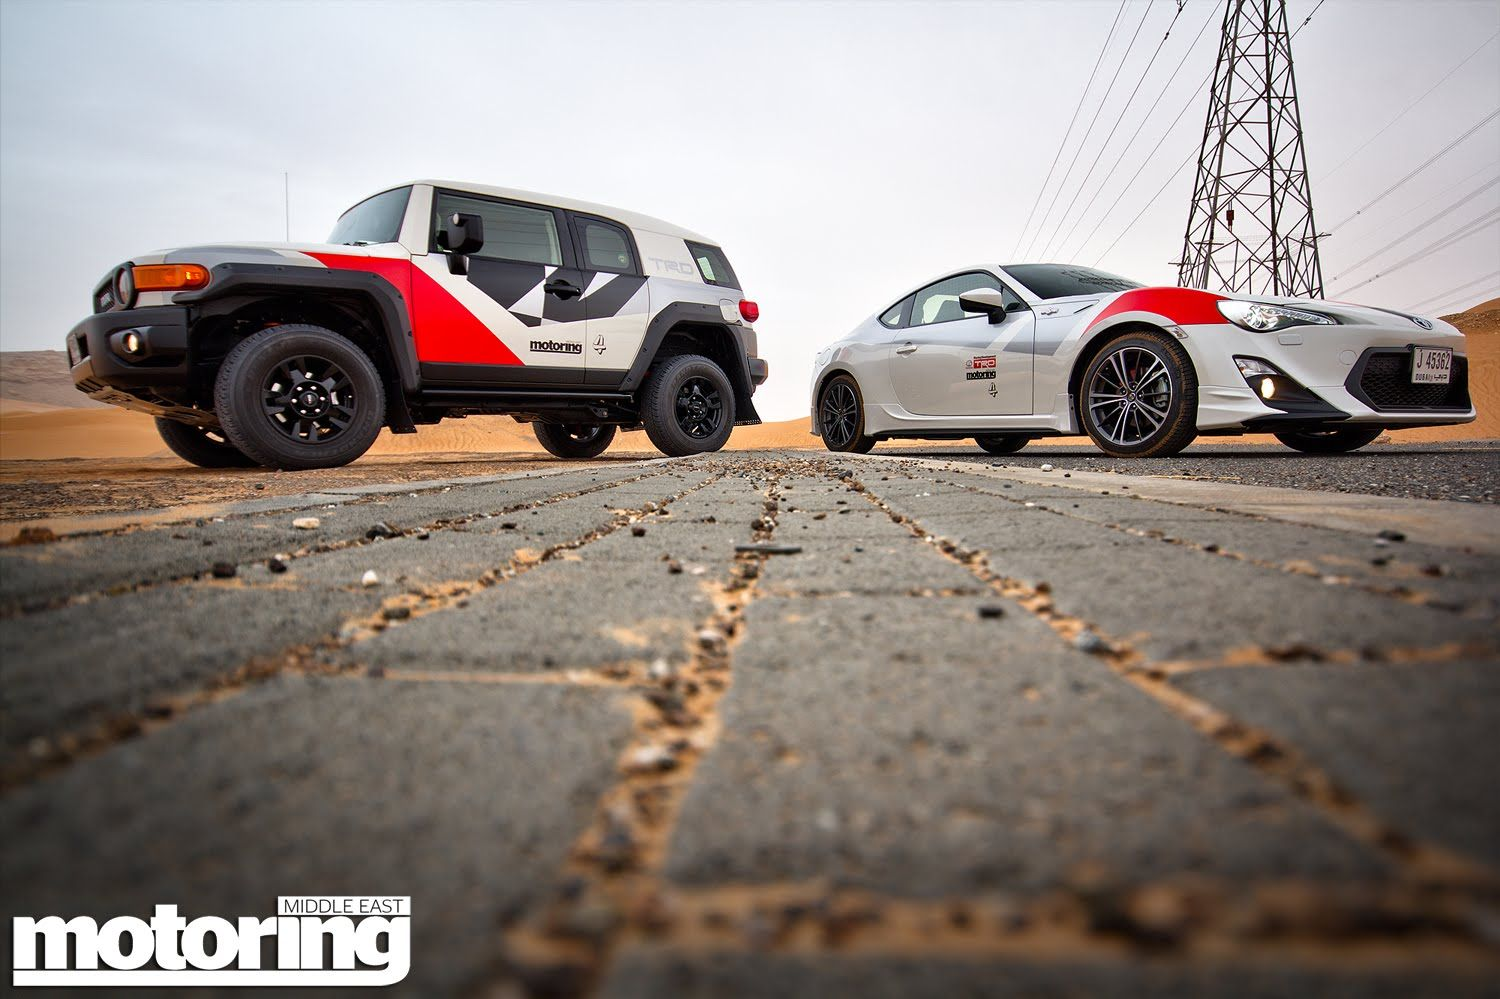 Can a Toyota FJ Cruiser beat a Toyota 86 across country?